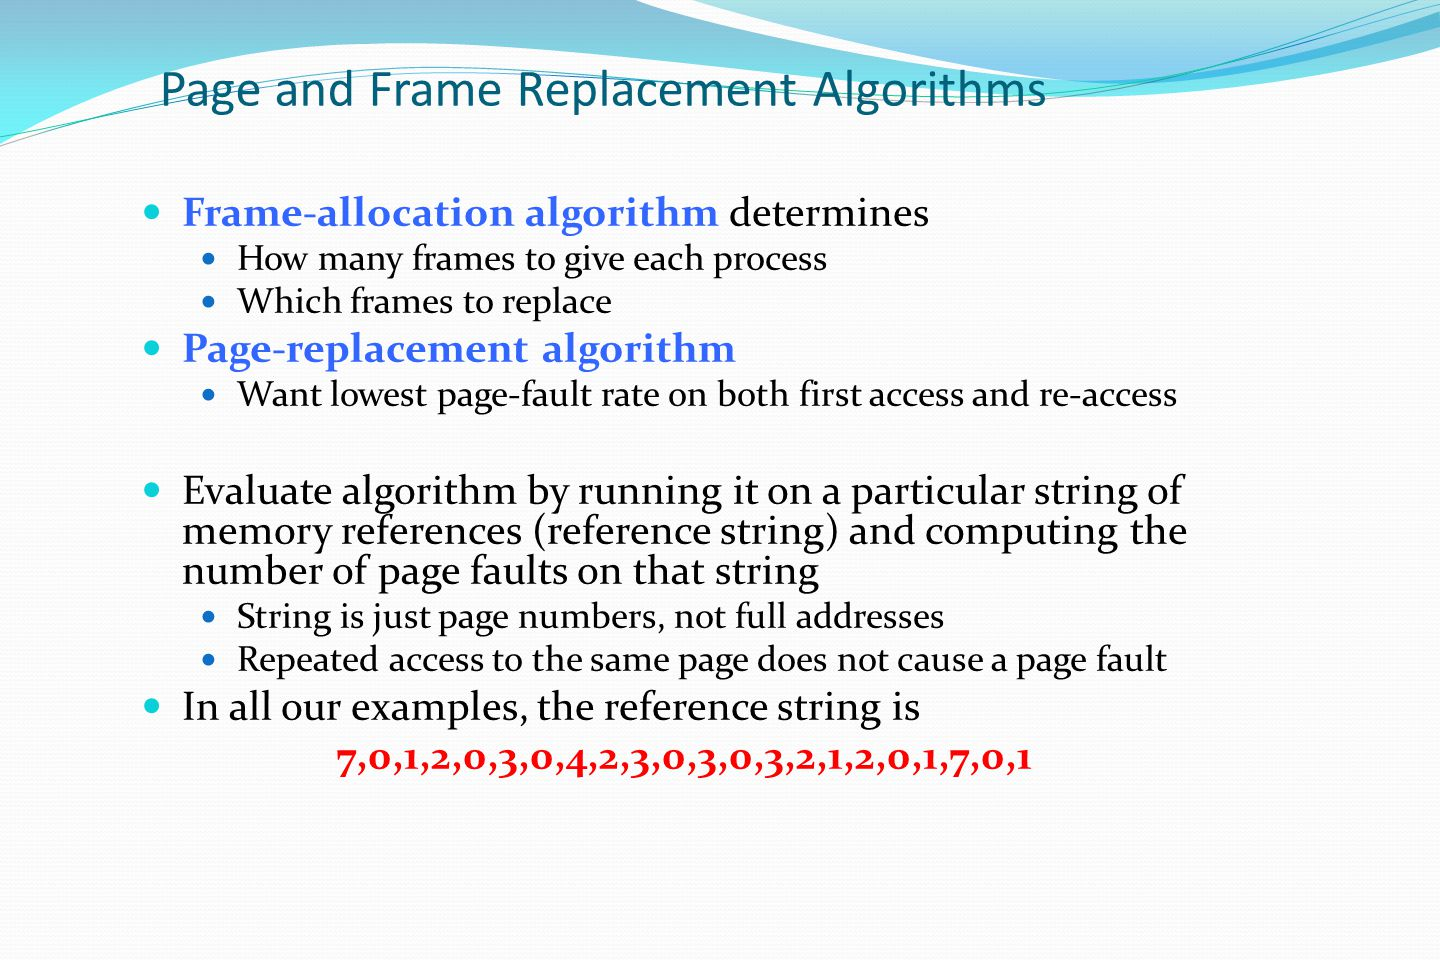 Page and Frame Replacement Algorithms Frame-allocation algorithm determines How many frames to give each process Which frames to replace Page-replacement algorithm Want lowest page-fault rate on both first access and re-access Evaluate algorithm by running it on a particular string of memory references (reference string) and computing the number of page faults on that string String is just page numbers, not full addresses Repeated access to the same page does not cause a page fault In all our examples, the reference string is 7,0,1,2,0,3,0,4,2,3,0,3,0,3,2,1,2,0,1,7,0,1